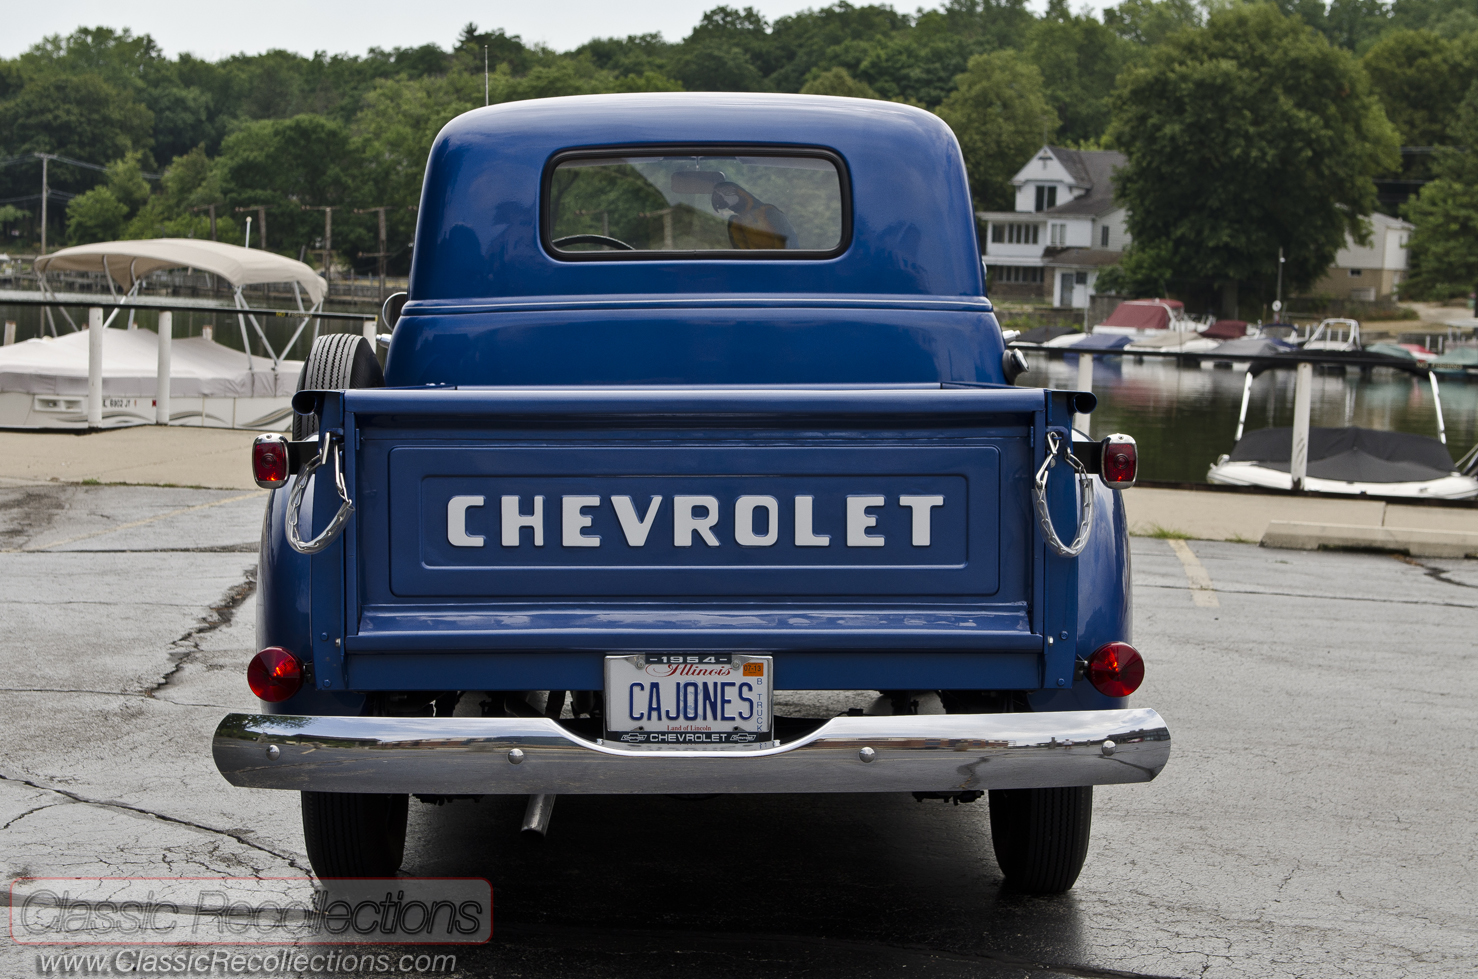 Feature 1954 Chevrolet 3100 Pickup Truck Classic Recollections Dsc 3902 72 3901 3900 3906